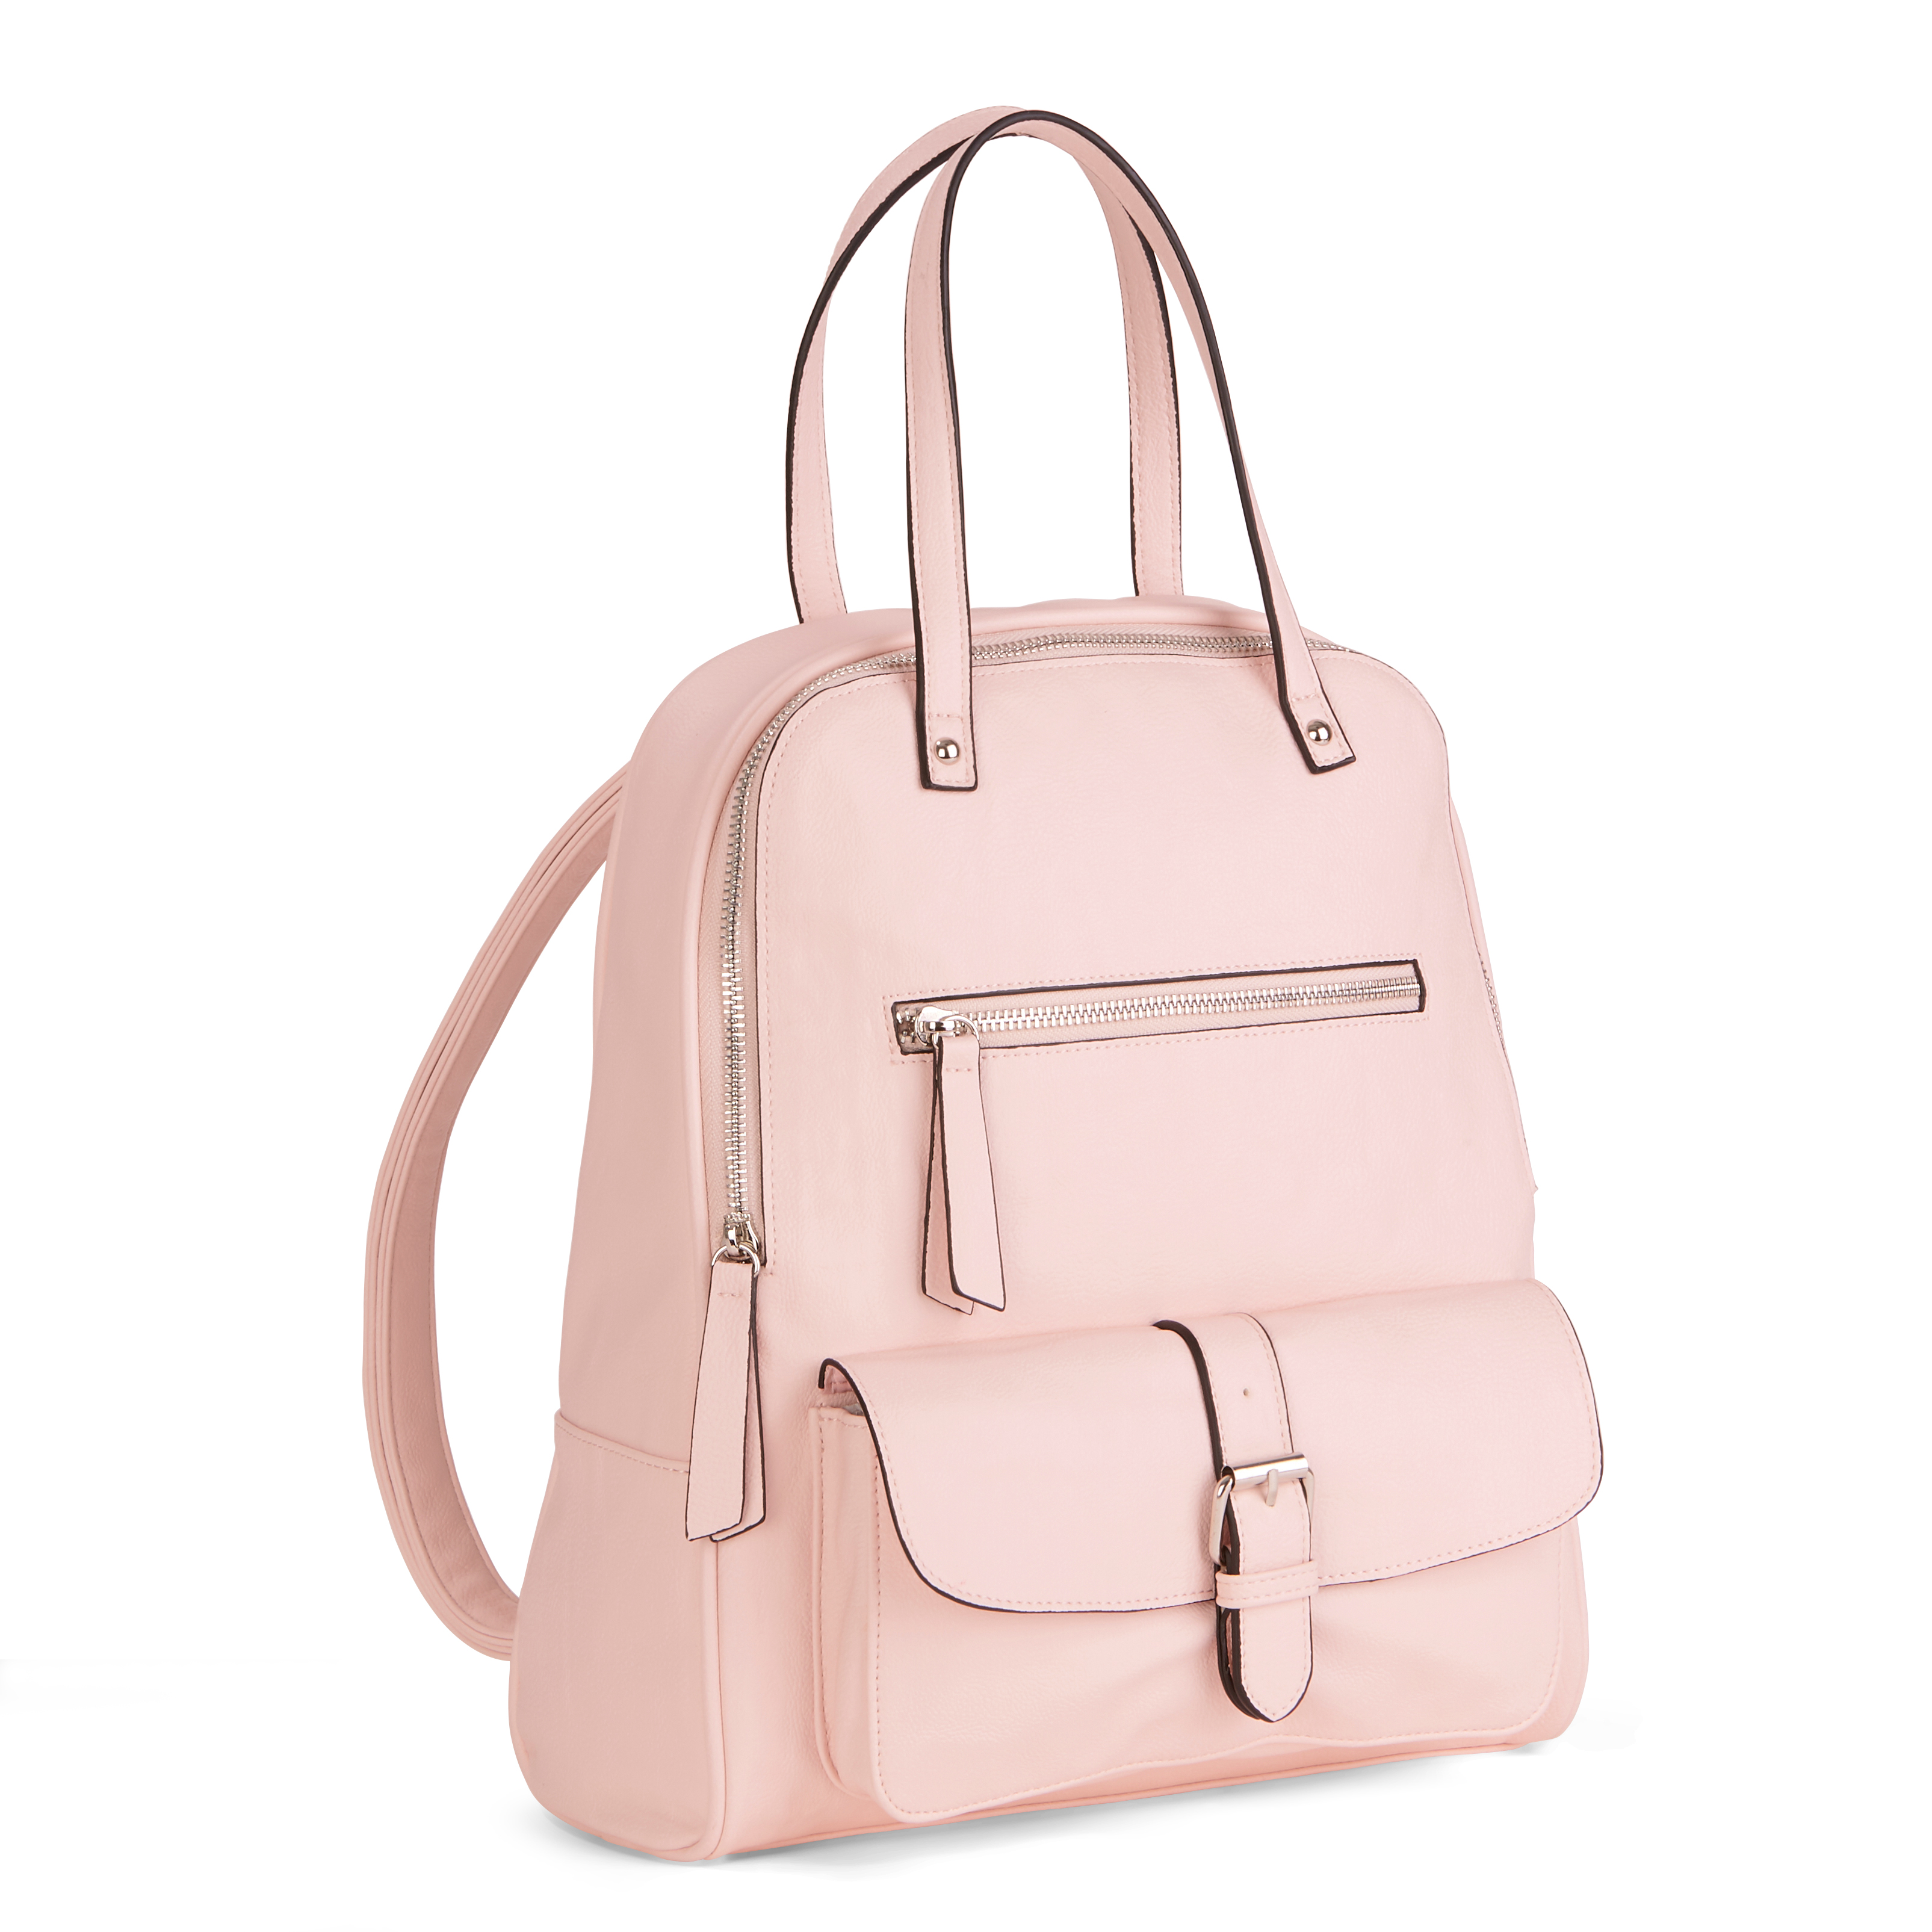 No Boundaries Pink Handbag Backpack